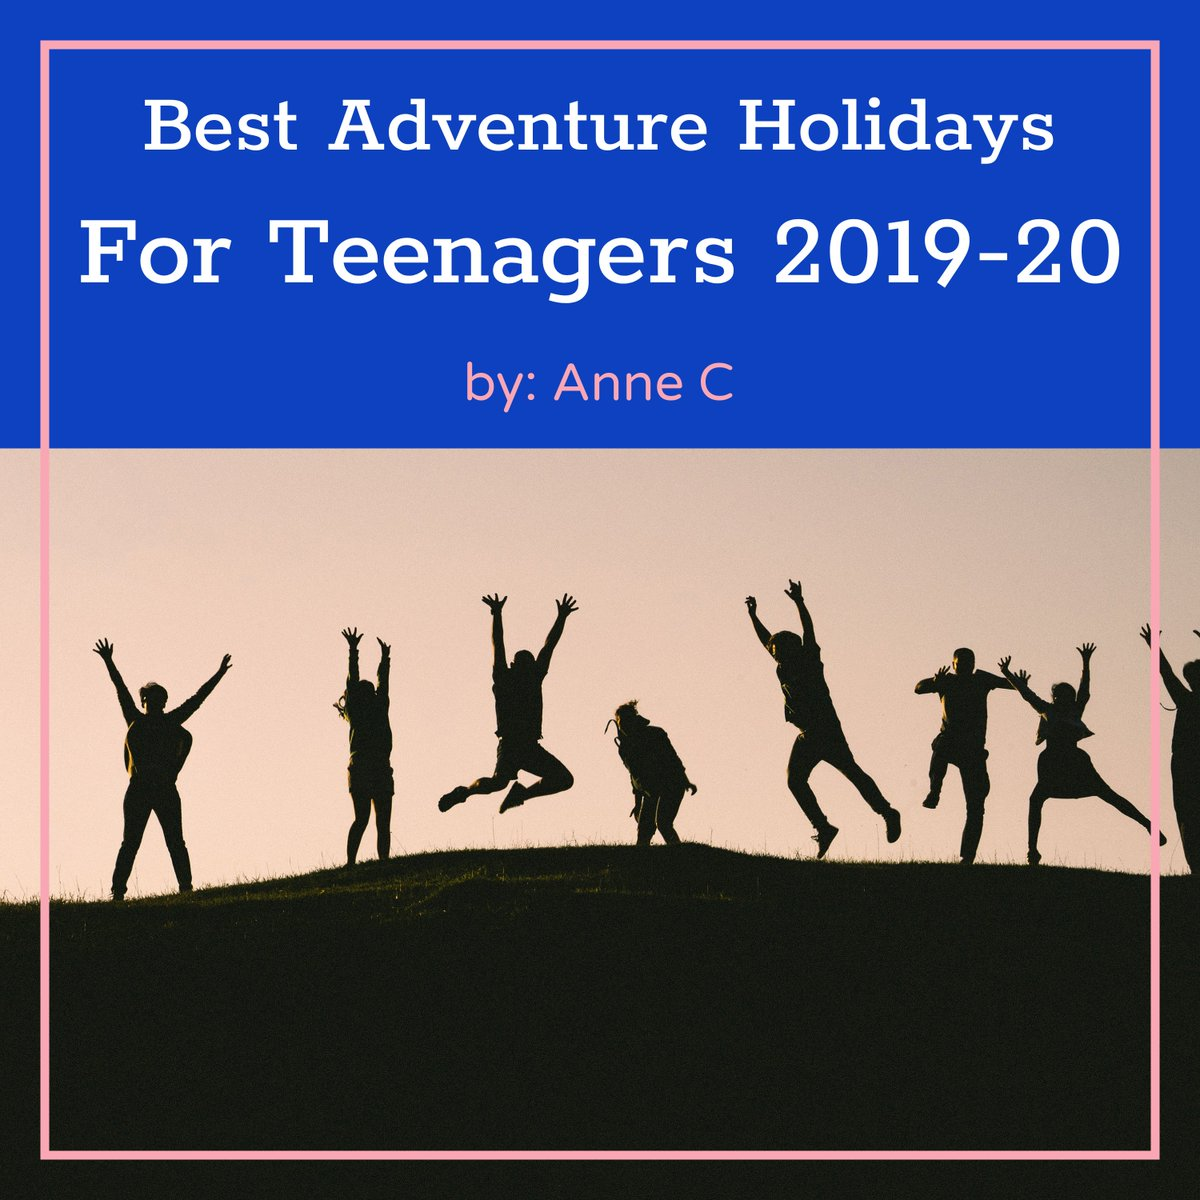 🛫Best Adventure Holidays for Solo Travelers 2019-20☀️https://www.abroaderview.org/blog/best-adventure-holidays-for-solo-travelers …If you're a solo traveler, finding the right adventure holiday can often be difficult. You want to find something with the perfect blend, we know#volunteerabroad, #gapyear #abroaderview #volunteering